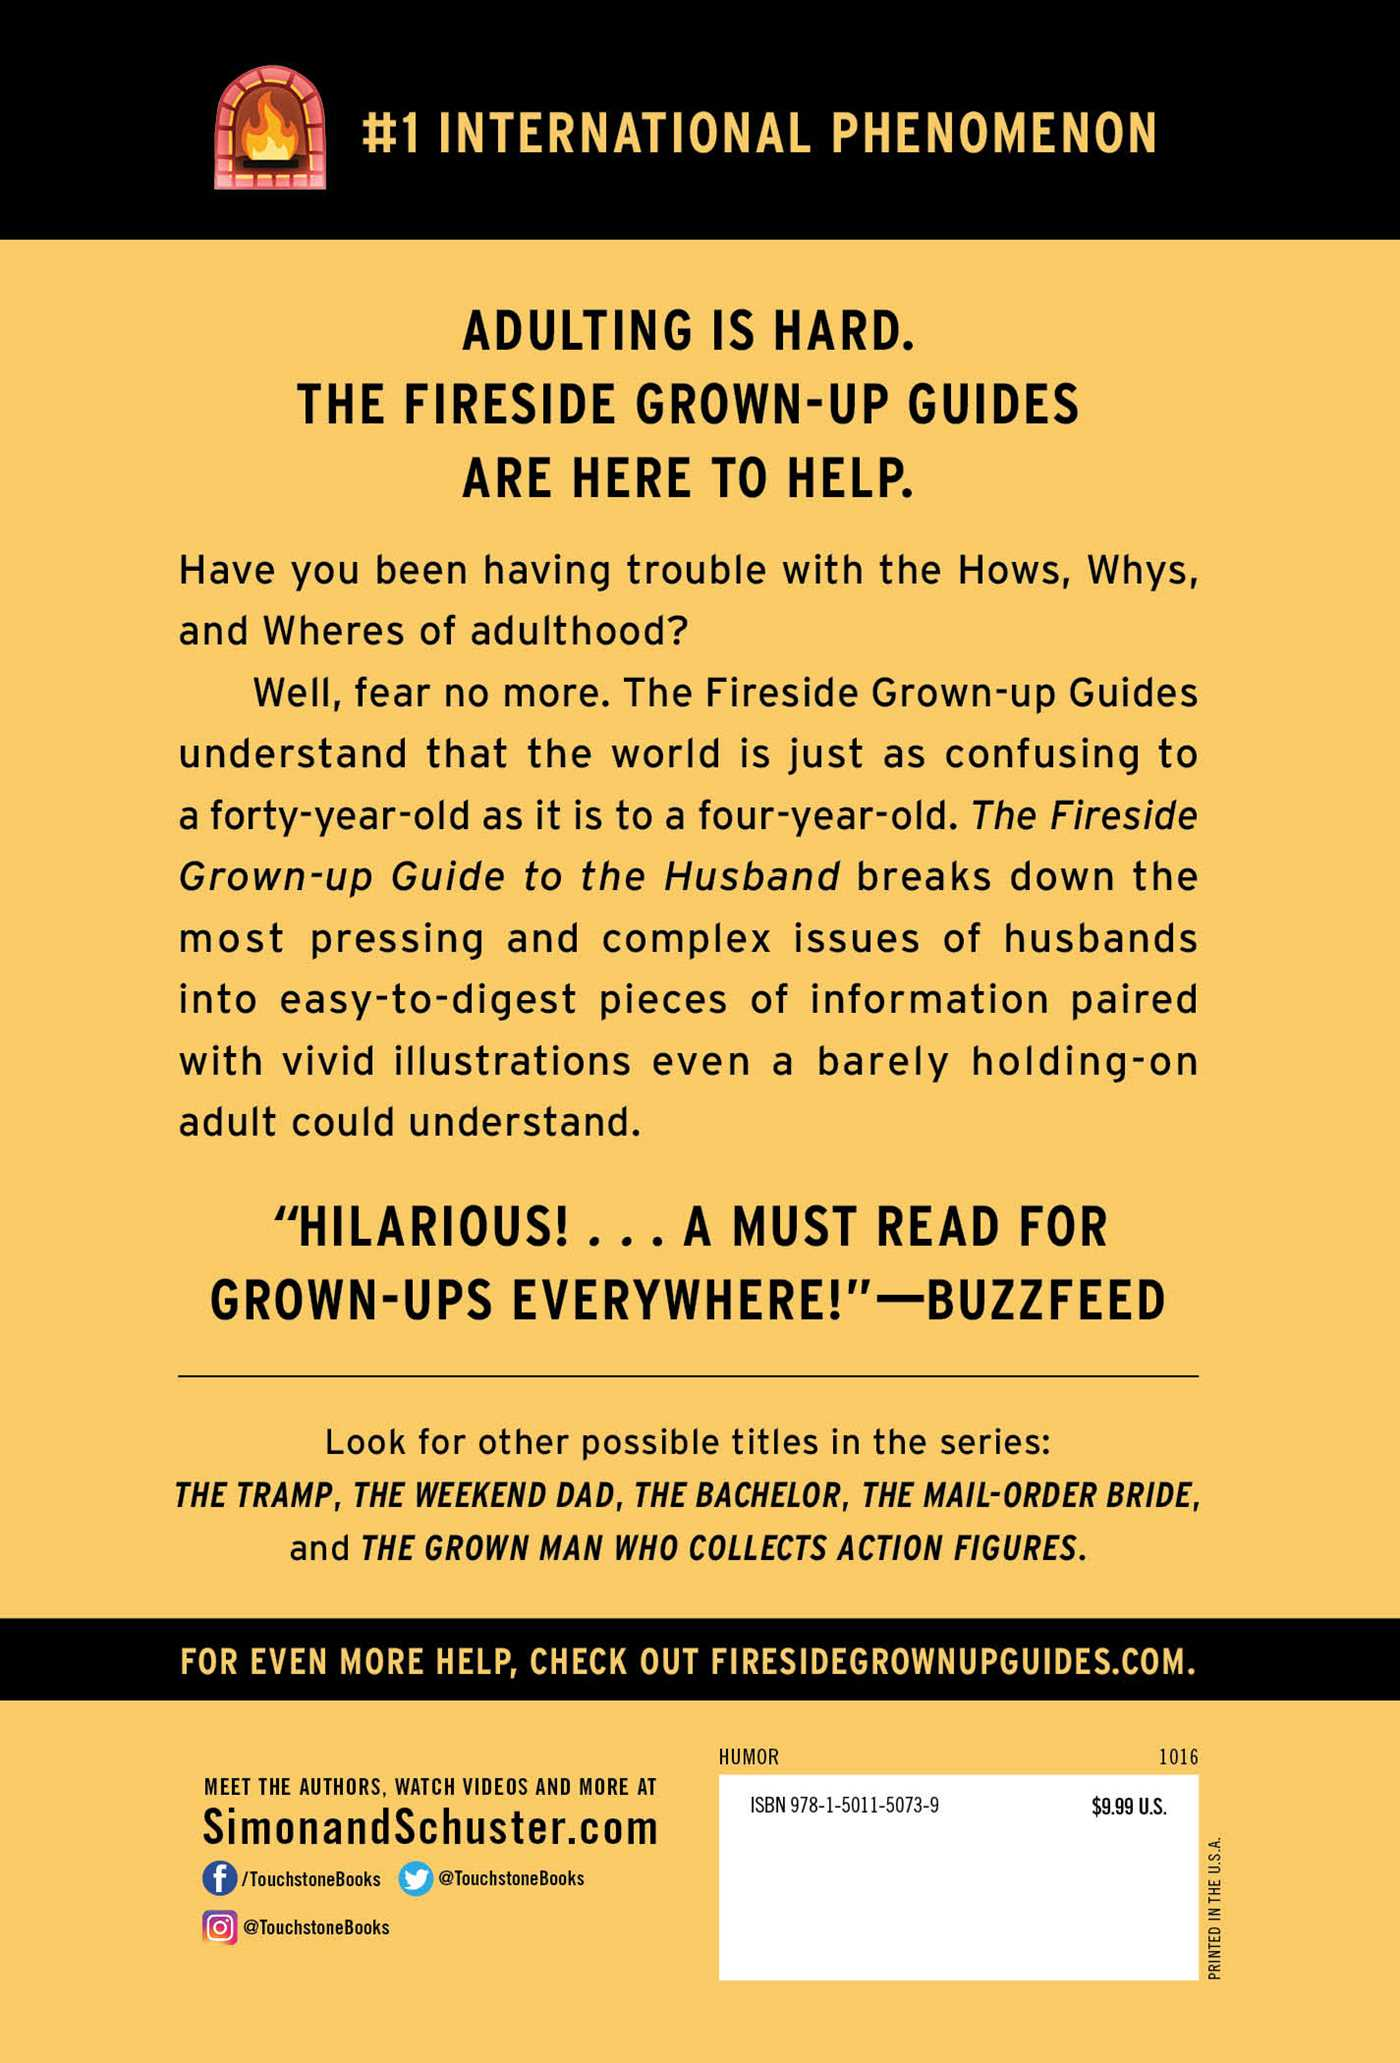 The Fireside Grown Up Guide To The Husband 9781501150739 Hr Back